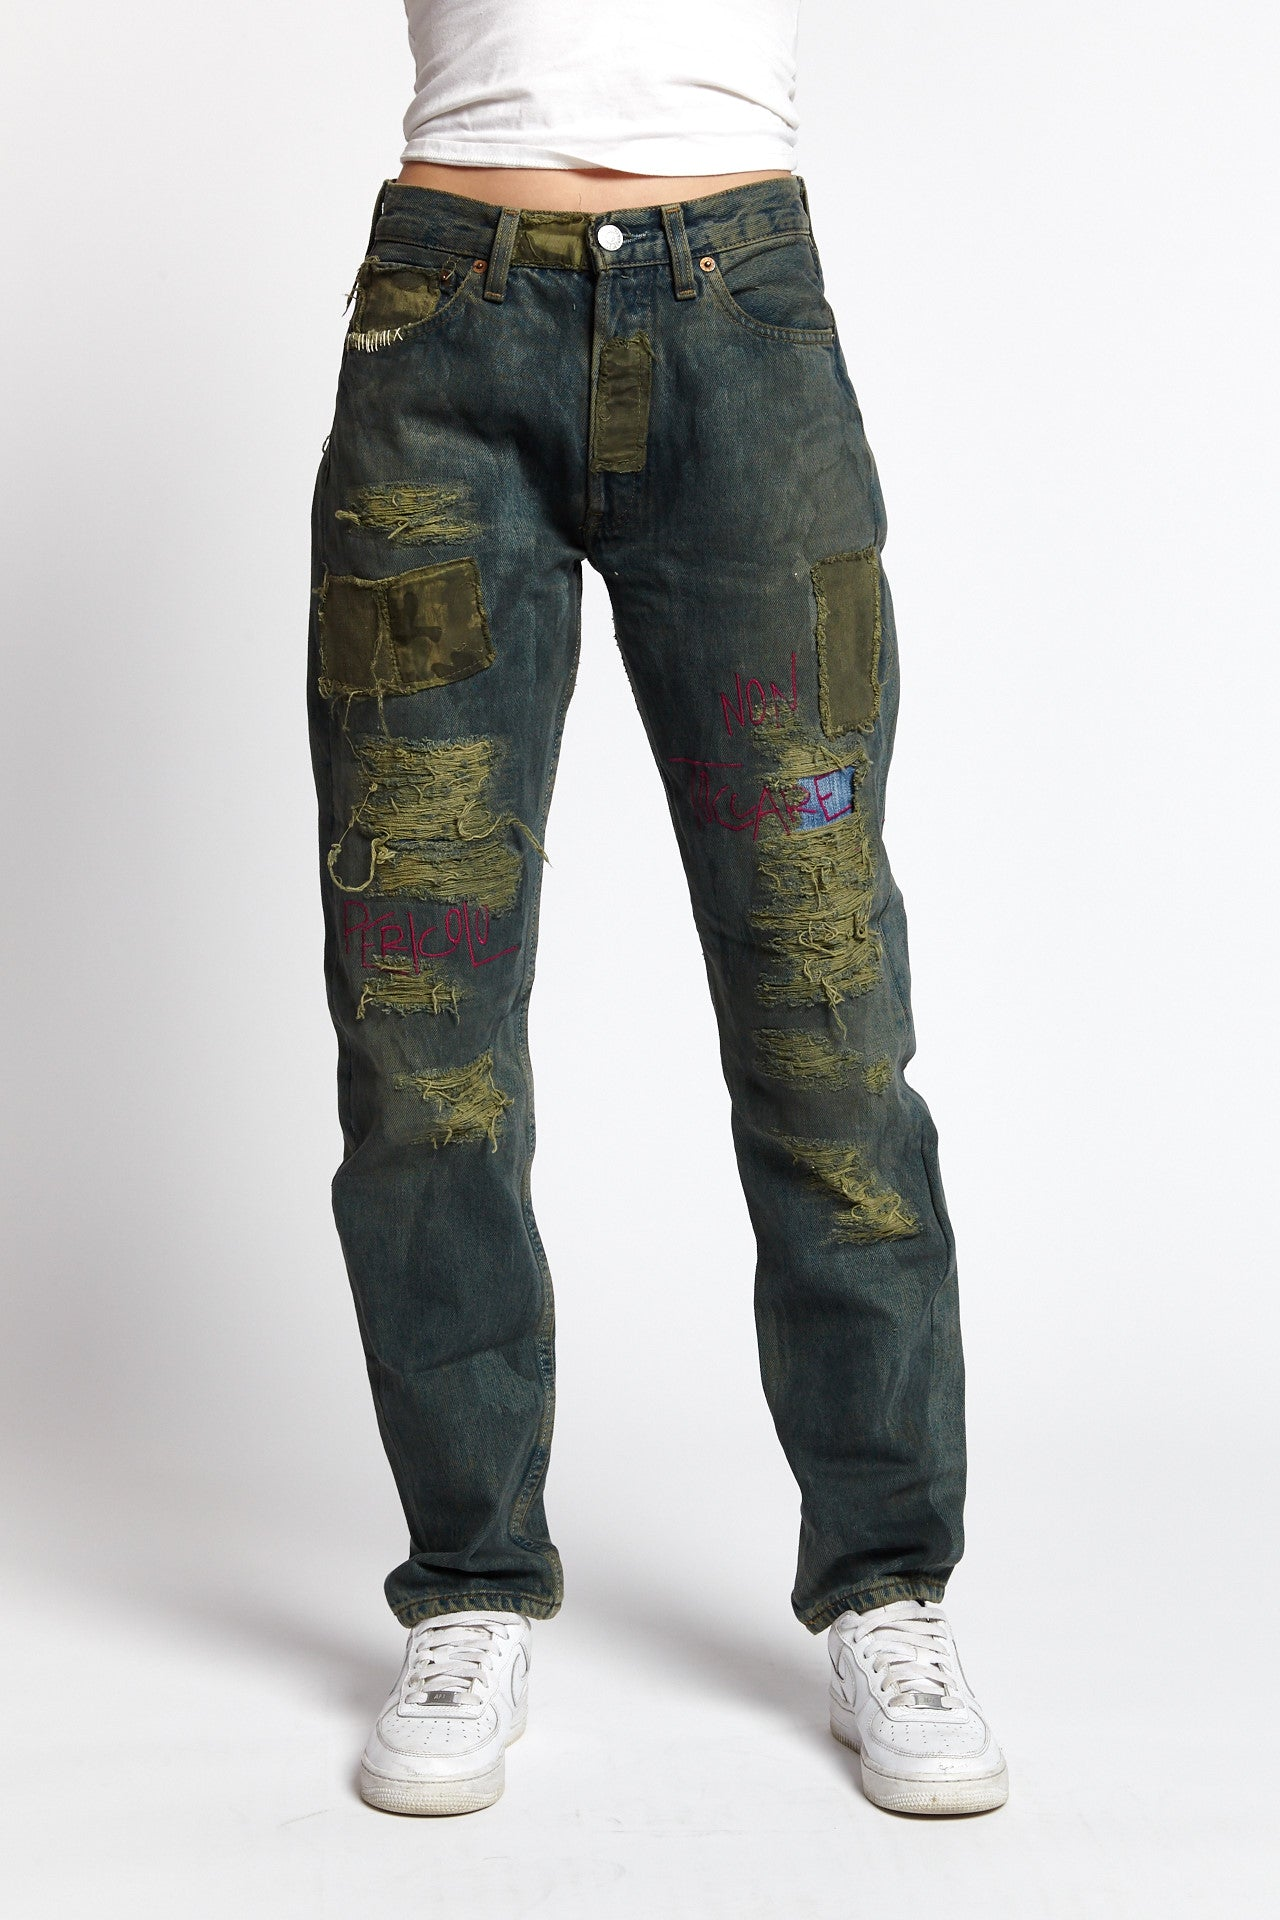 TOSSICO DISTRESSED COTTON BLUE GREEN 29 W JEANS-BOTTOMS-Mundane Official-29-BLUE/GREEN-Mundane Official